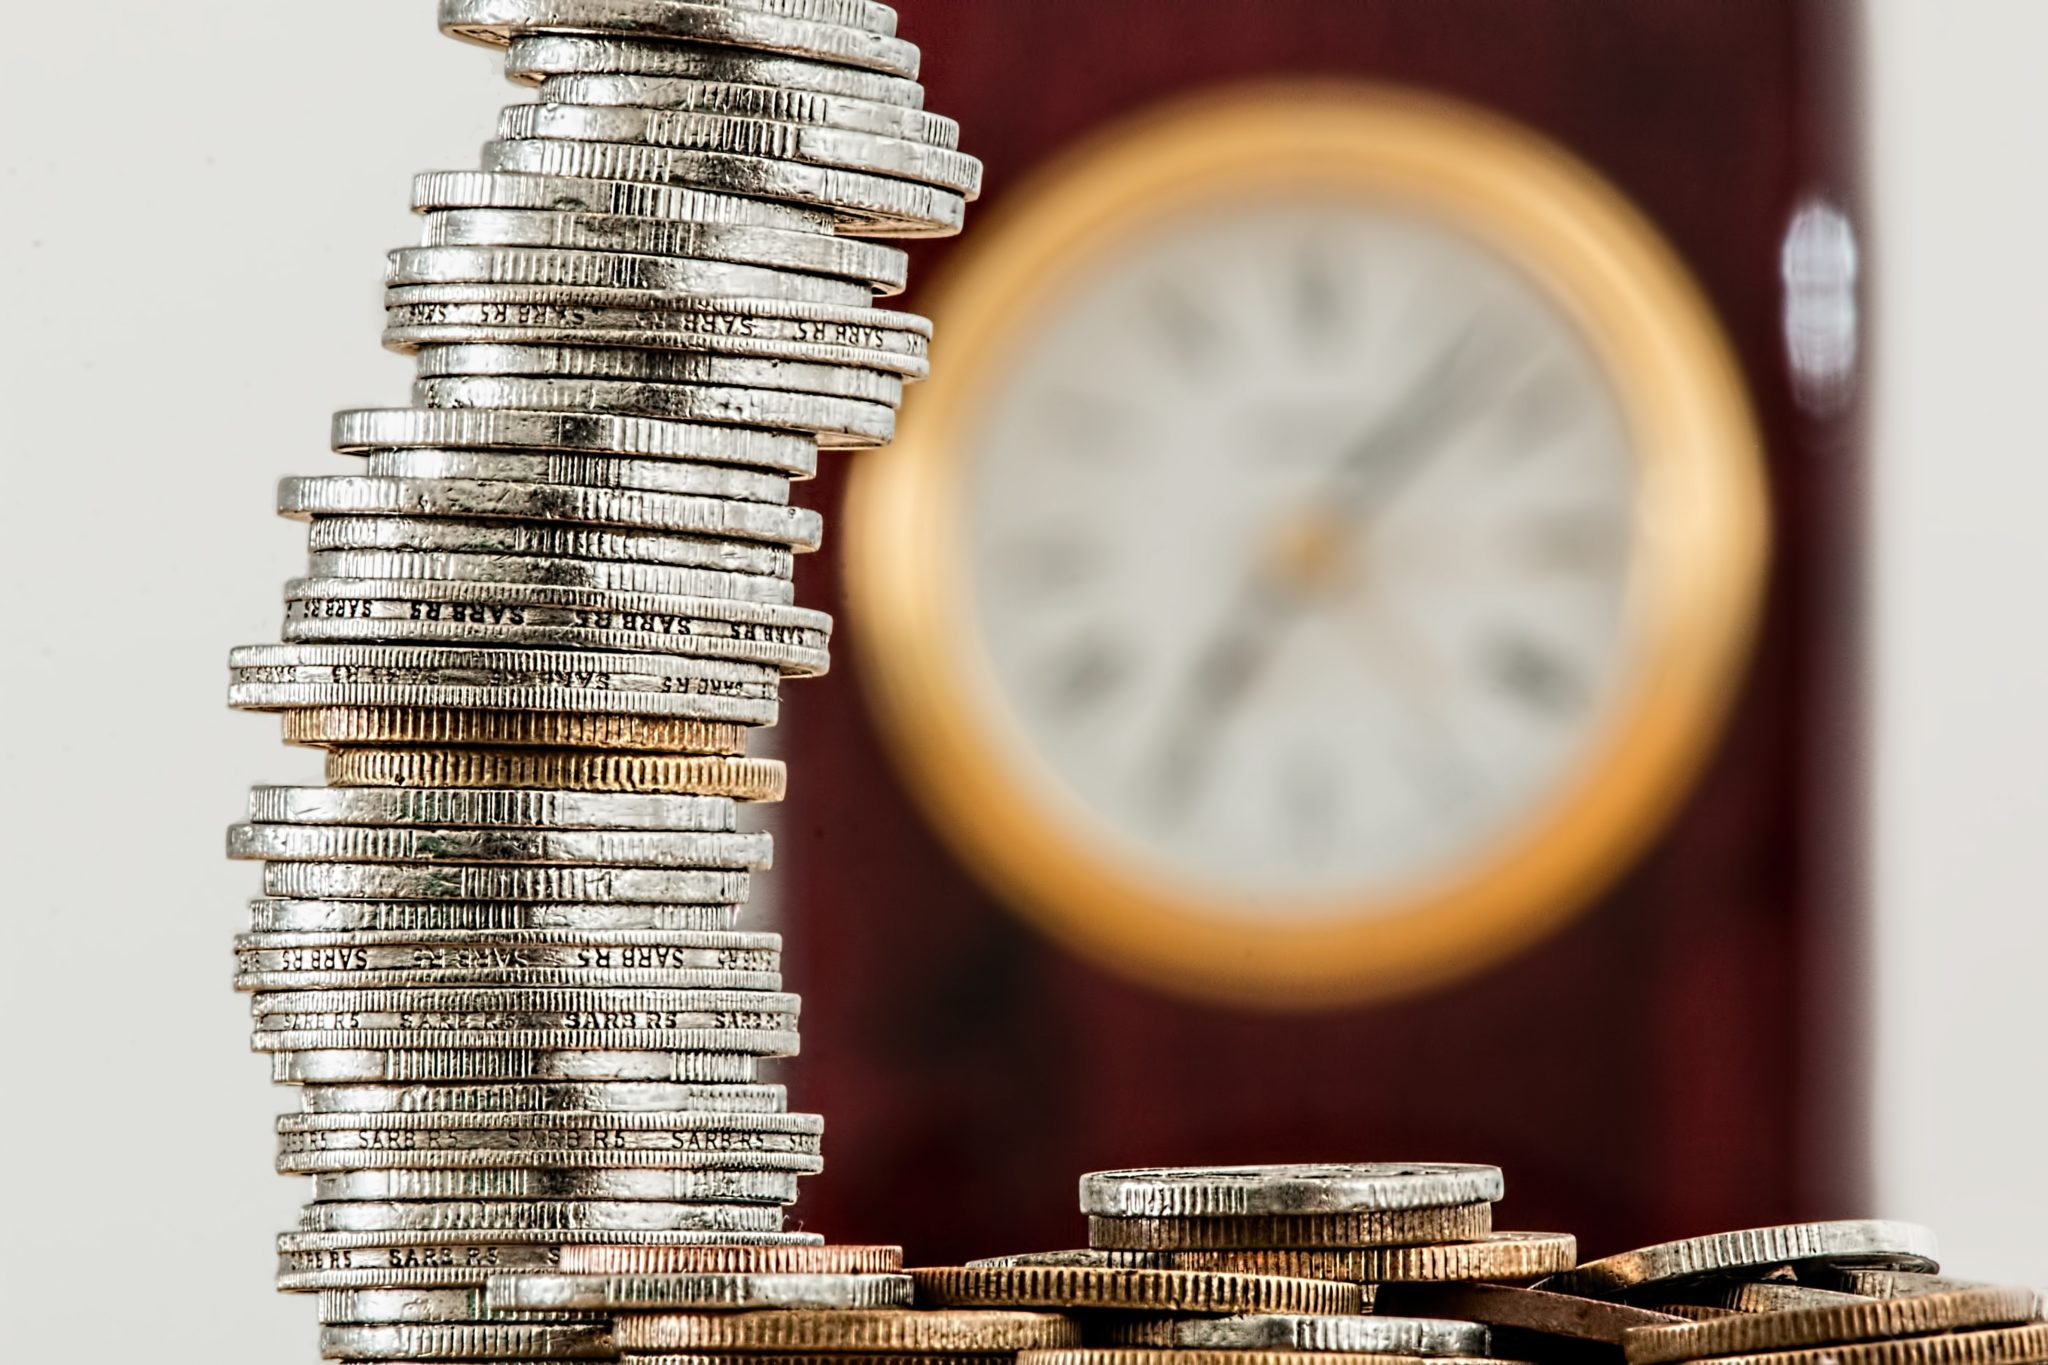 Image source: https://pixabay.com/photos/coins-currency-investment-insurance-1523383